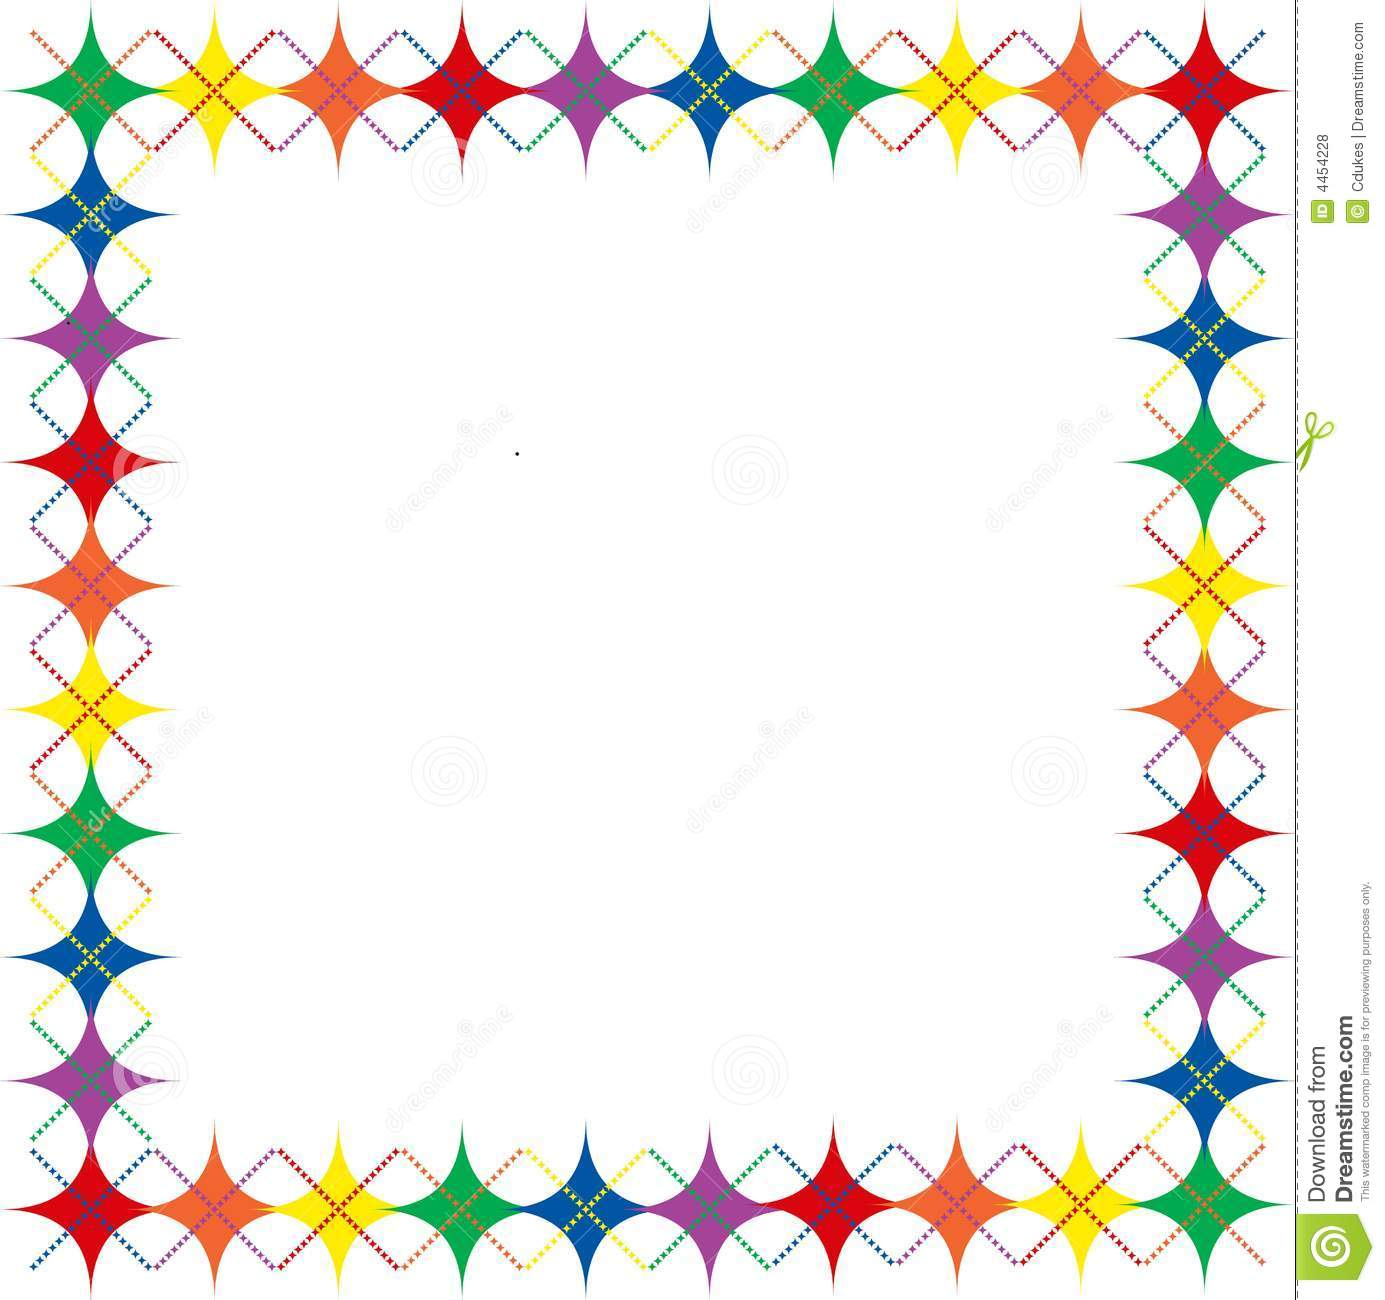 Royalty Free Stock Photos Rainbow Argyle Stars Border Image4454228 on Space Theme Printables